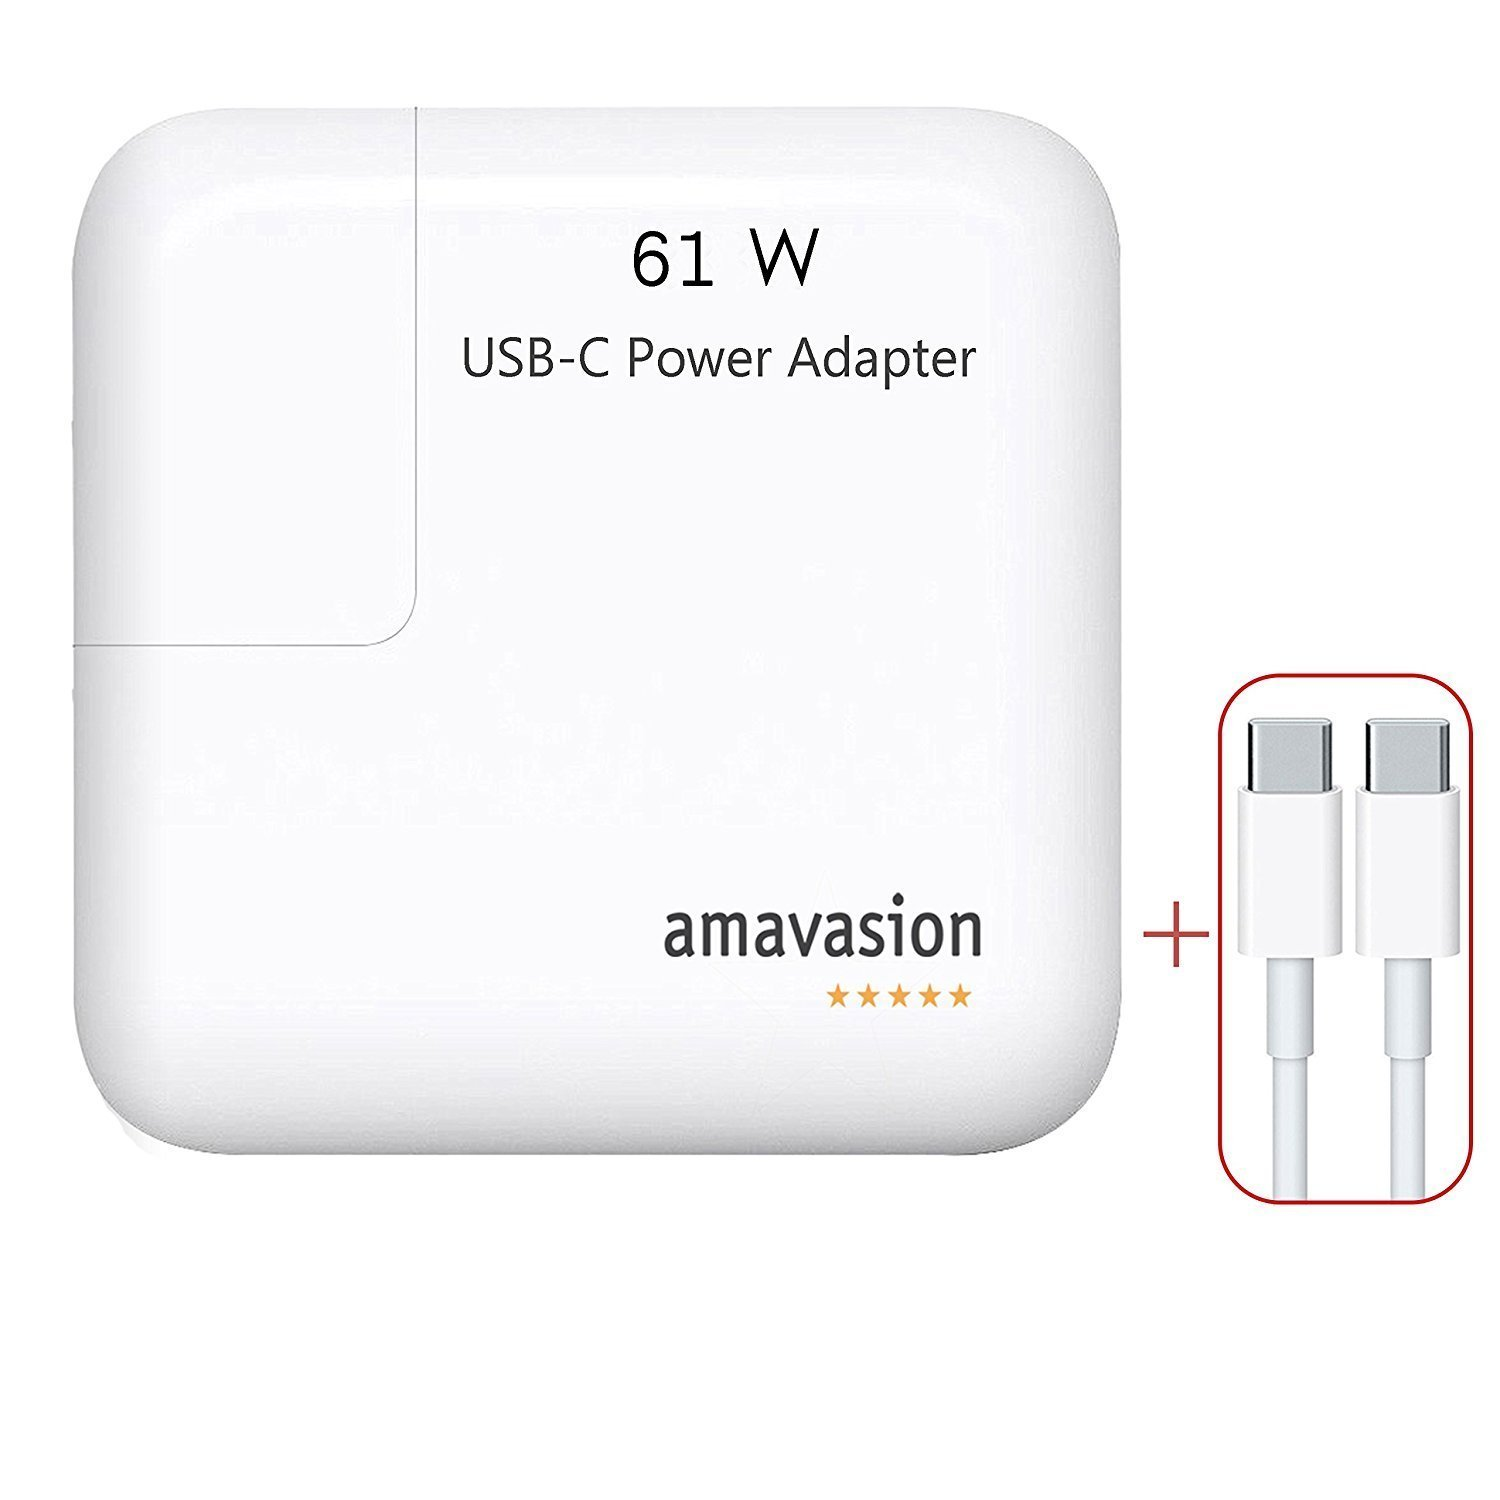 61W USB-C Power adapter,Mac Pro Charger,Amavasion Replacement Type C Charge Adapter for Macbook/Macbook Pro 13 inch,iPhone X,iPhone 8/8Plus/7/7Plus,Samsung Galaxy S8/Note 8.